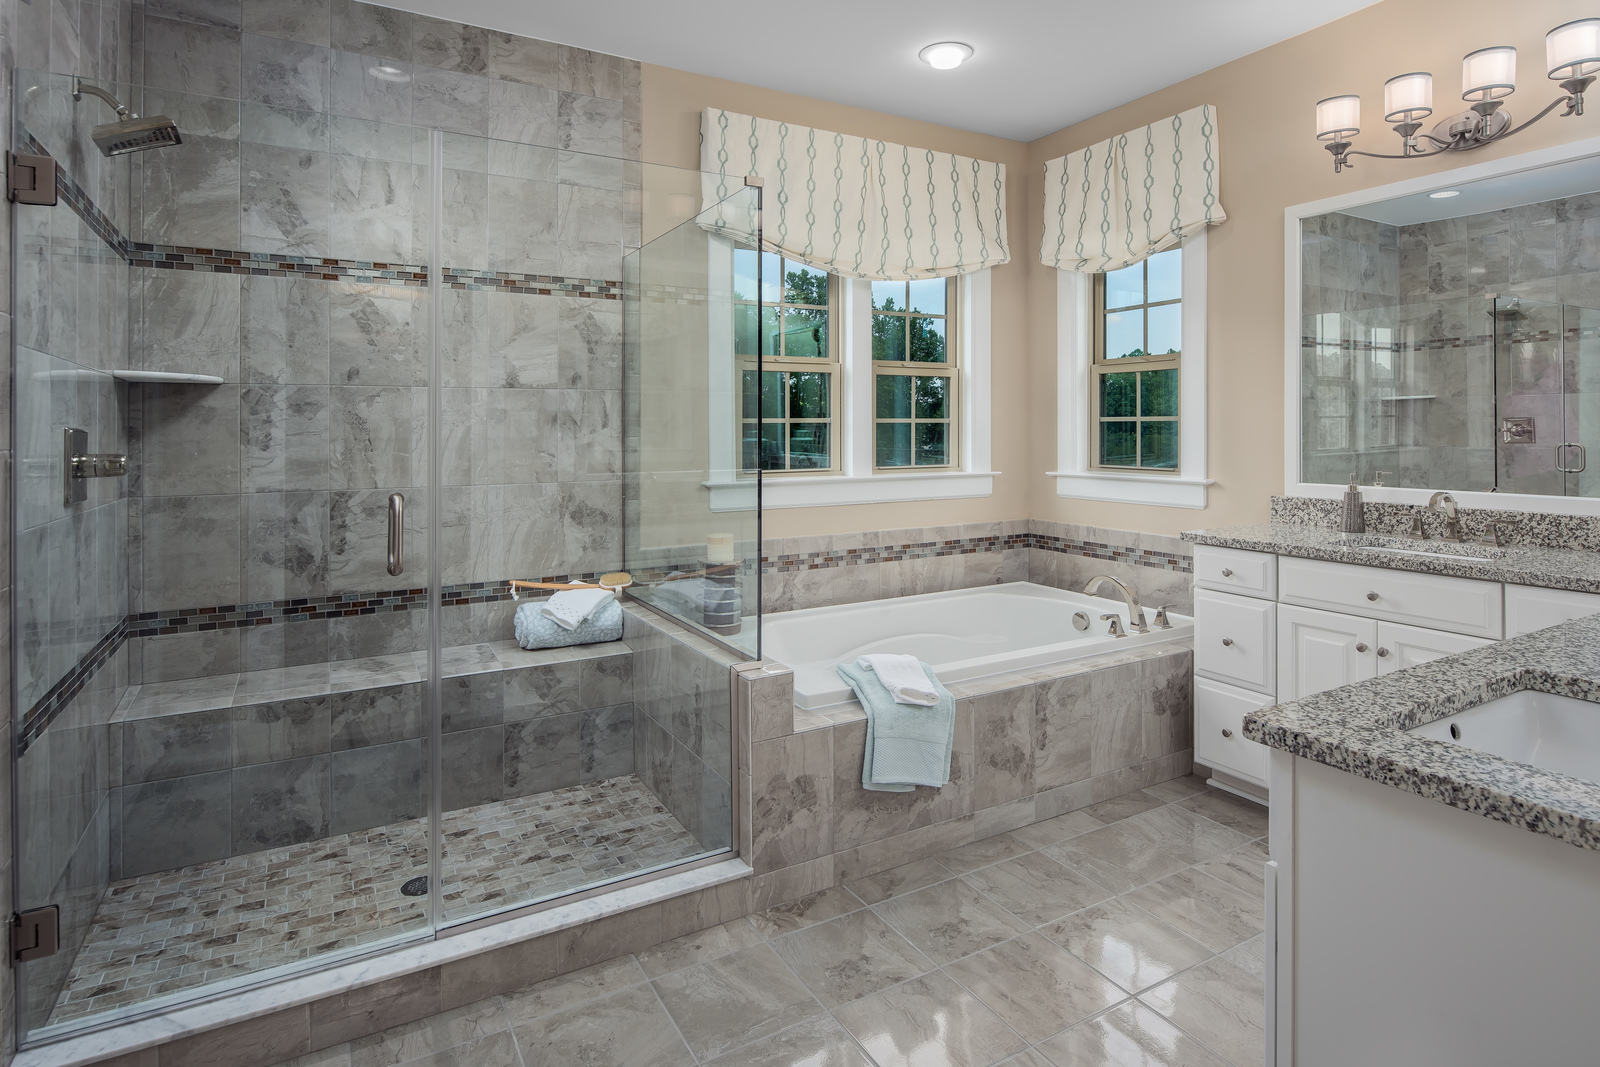 With Roman showers and soaking tubs, you won't need to leave home to feel pampered.